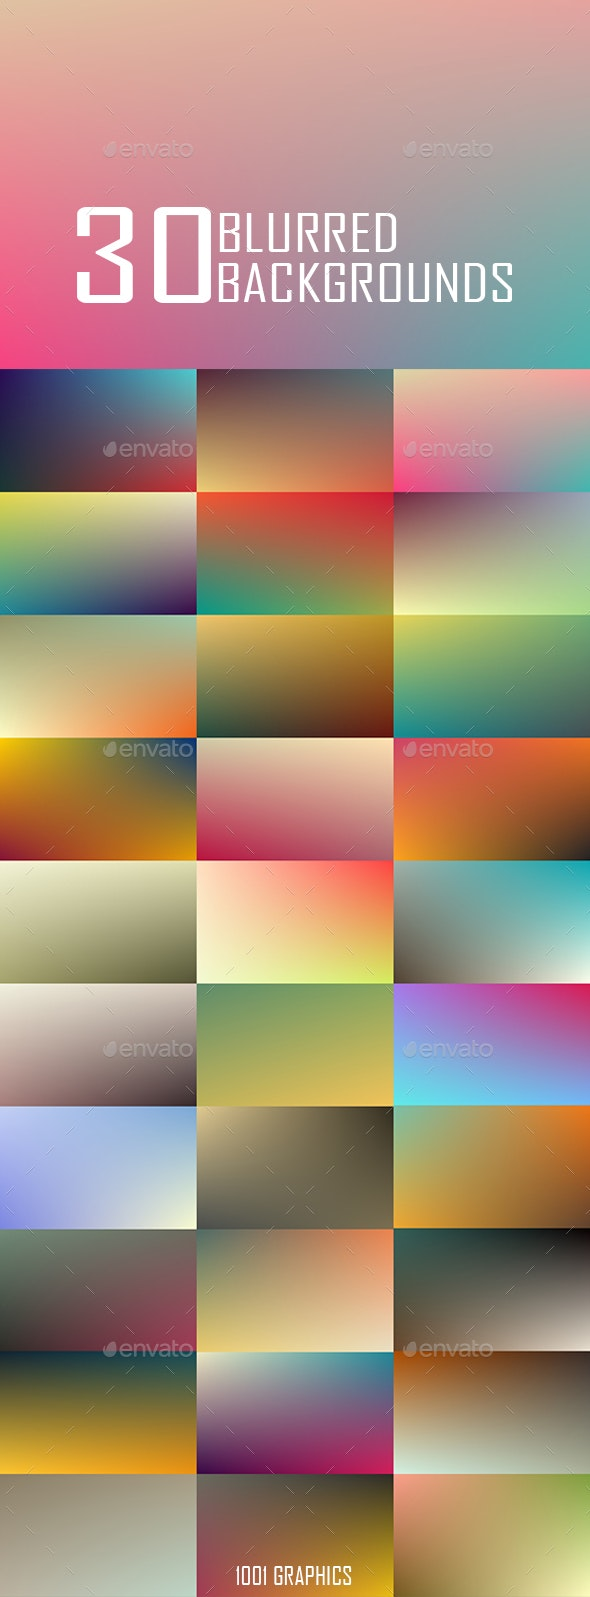 30 Blurred Backgrounds JPG High Res - Backgrounds Graphics